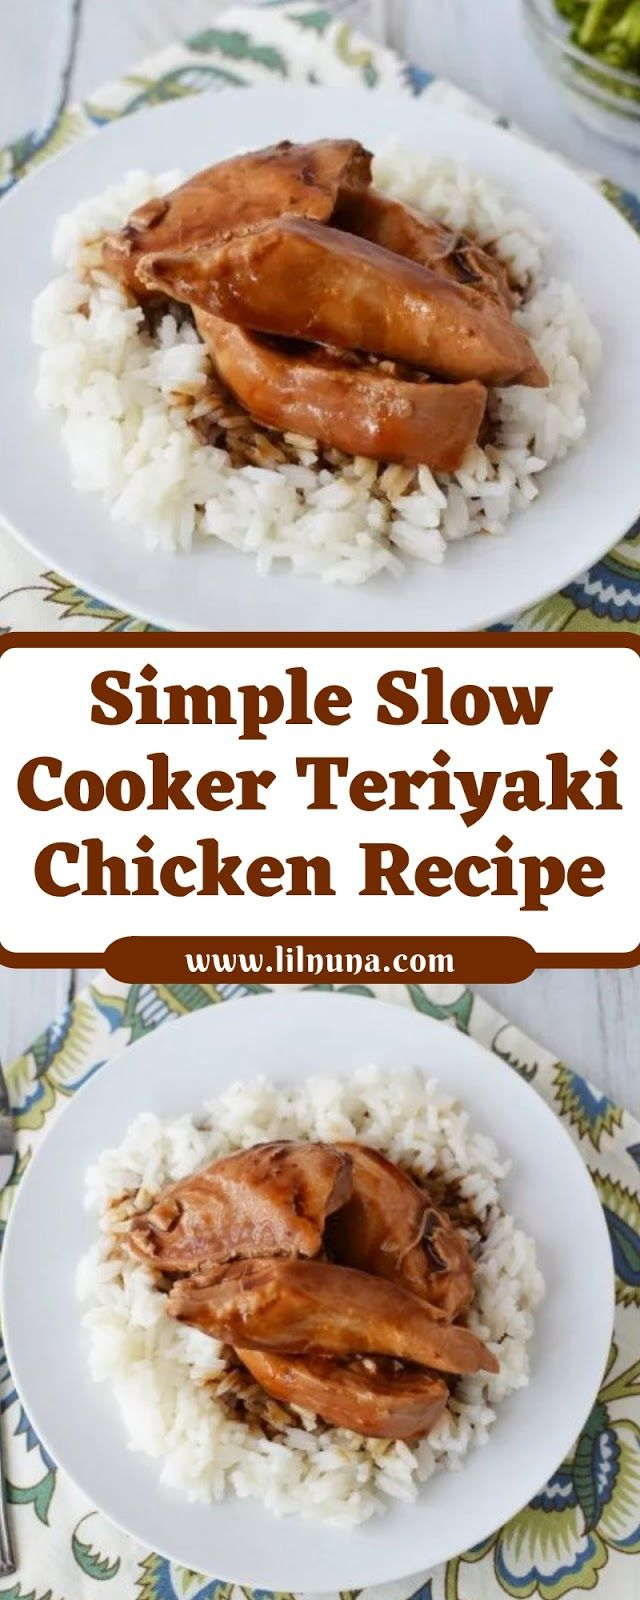 Simple Slow Cooker Teriyaki Chicken Recipe images